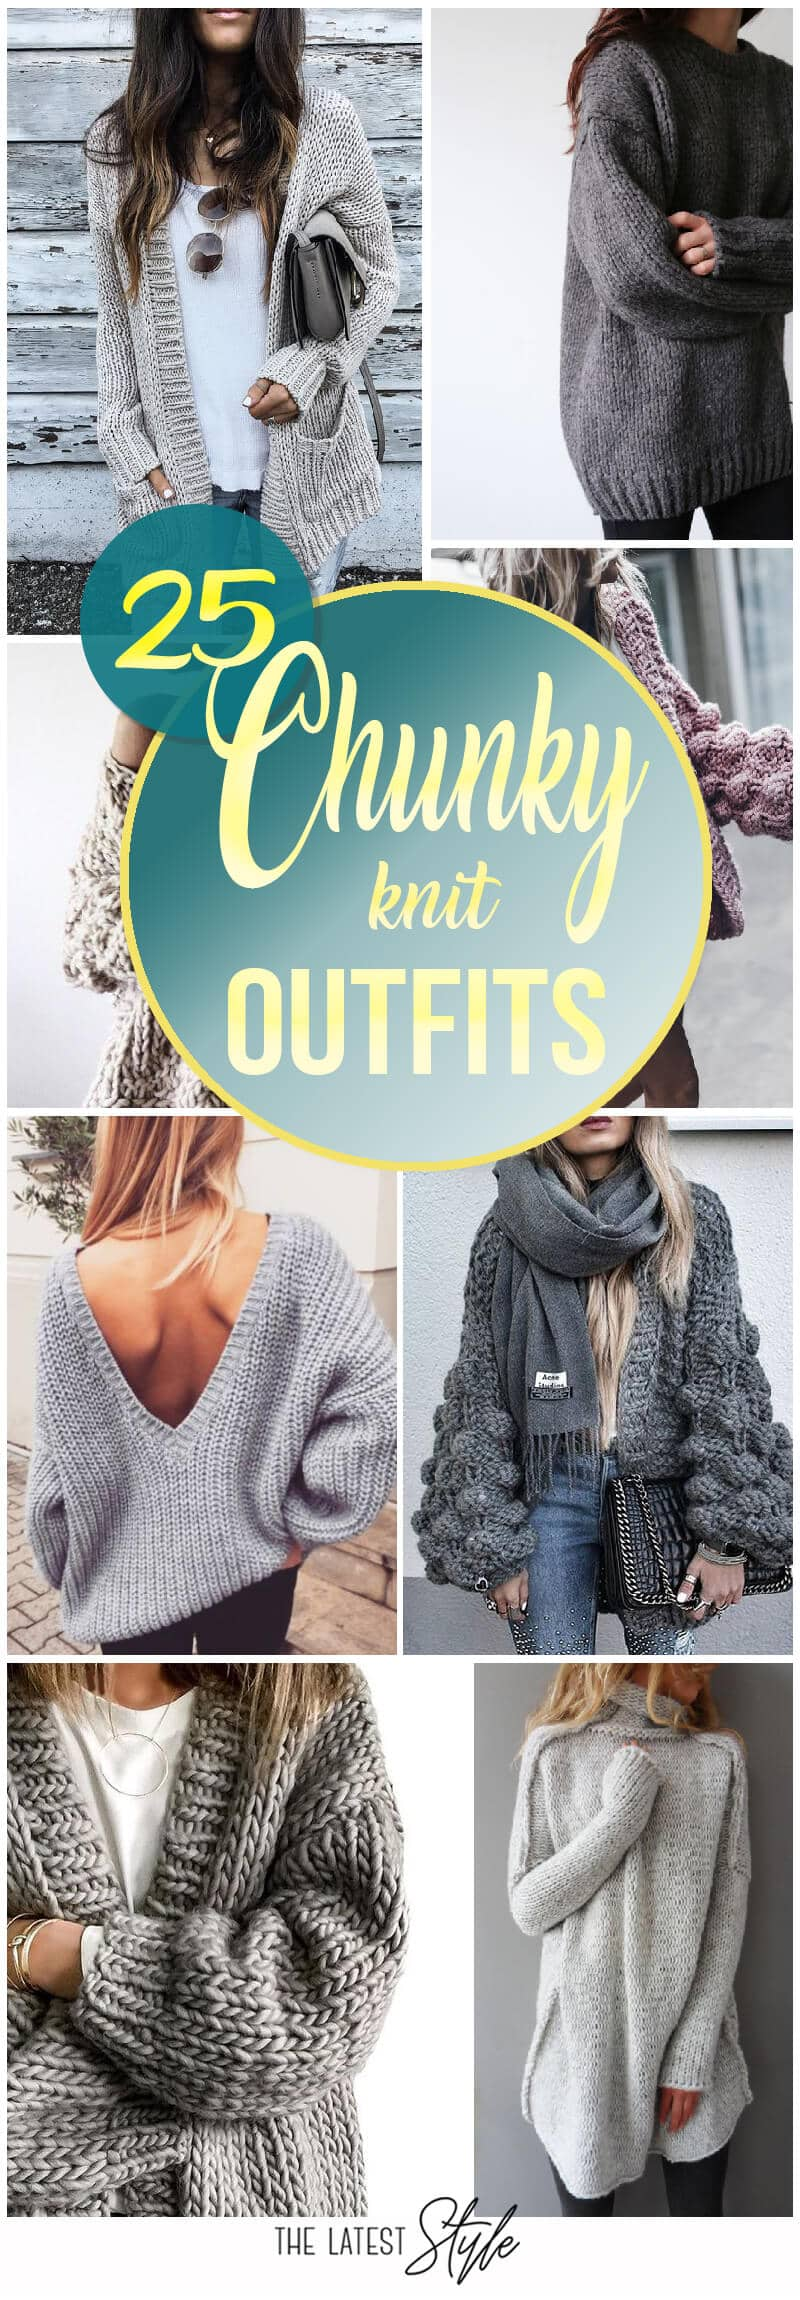 53b47ab287 25 Chunky Knit Sweater Outfits For The Holidays